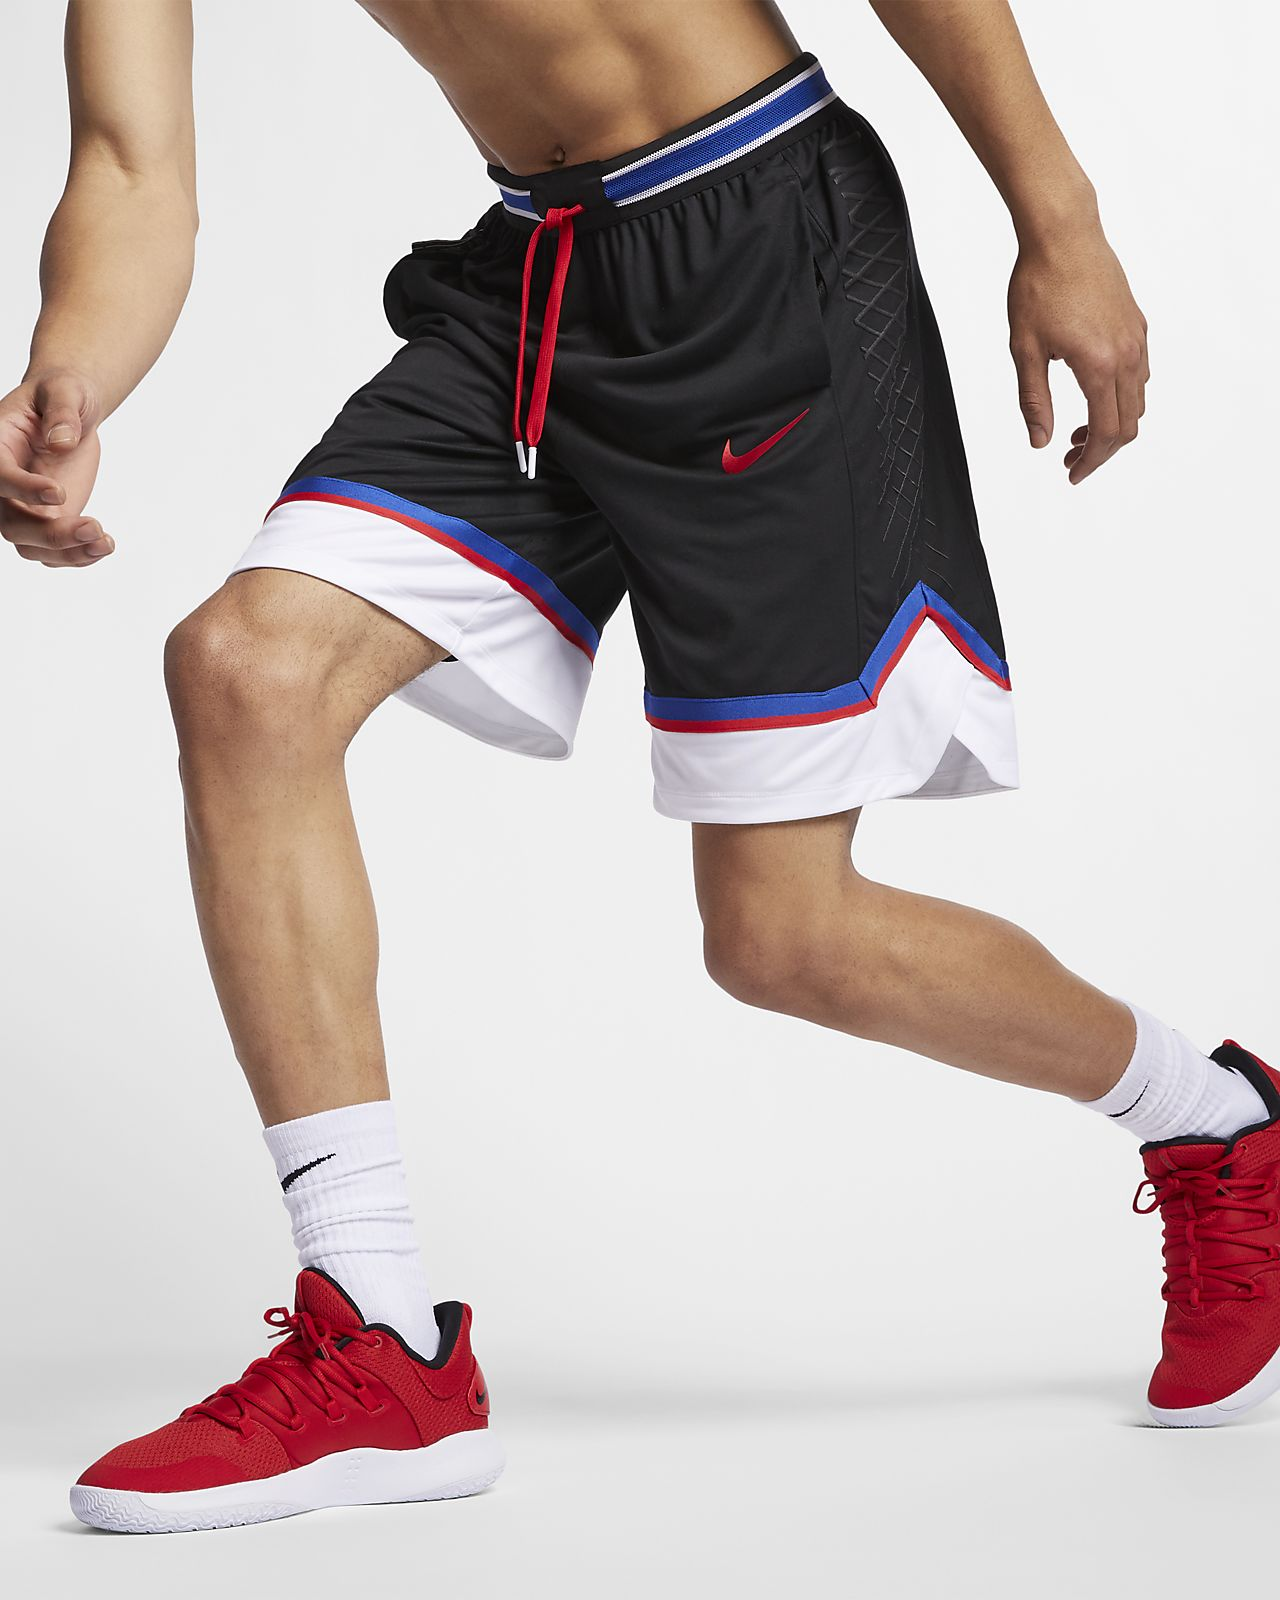 Nike VaporKnit Icon Men's Basketball Shorts